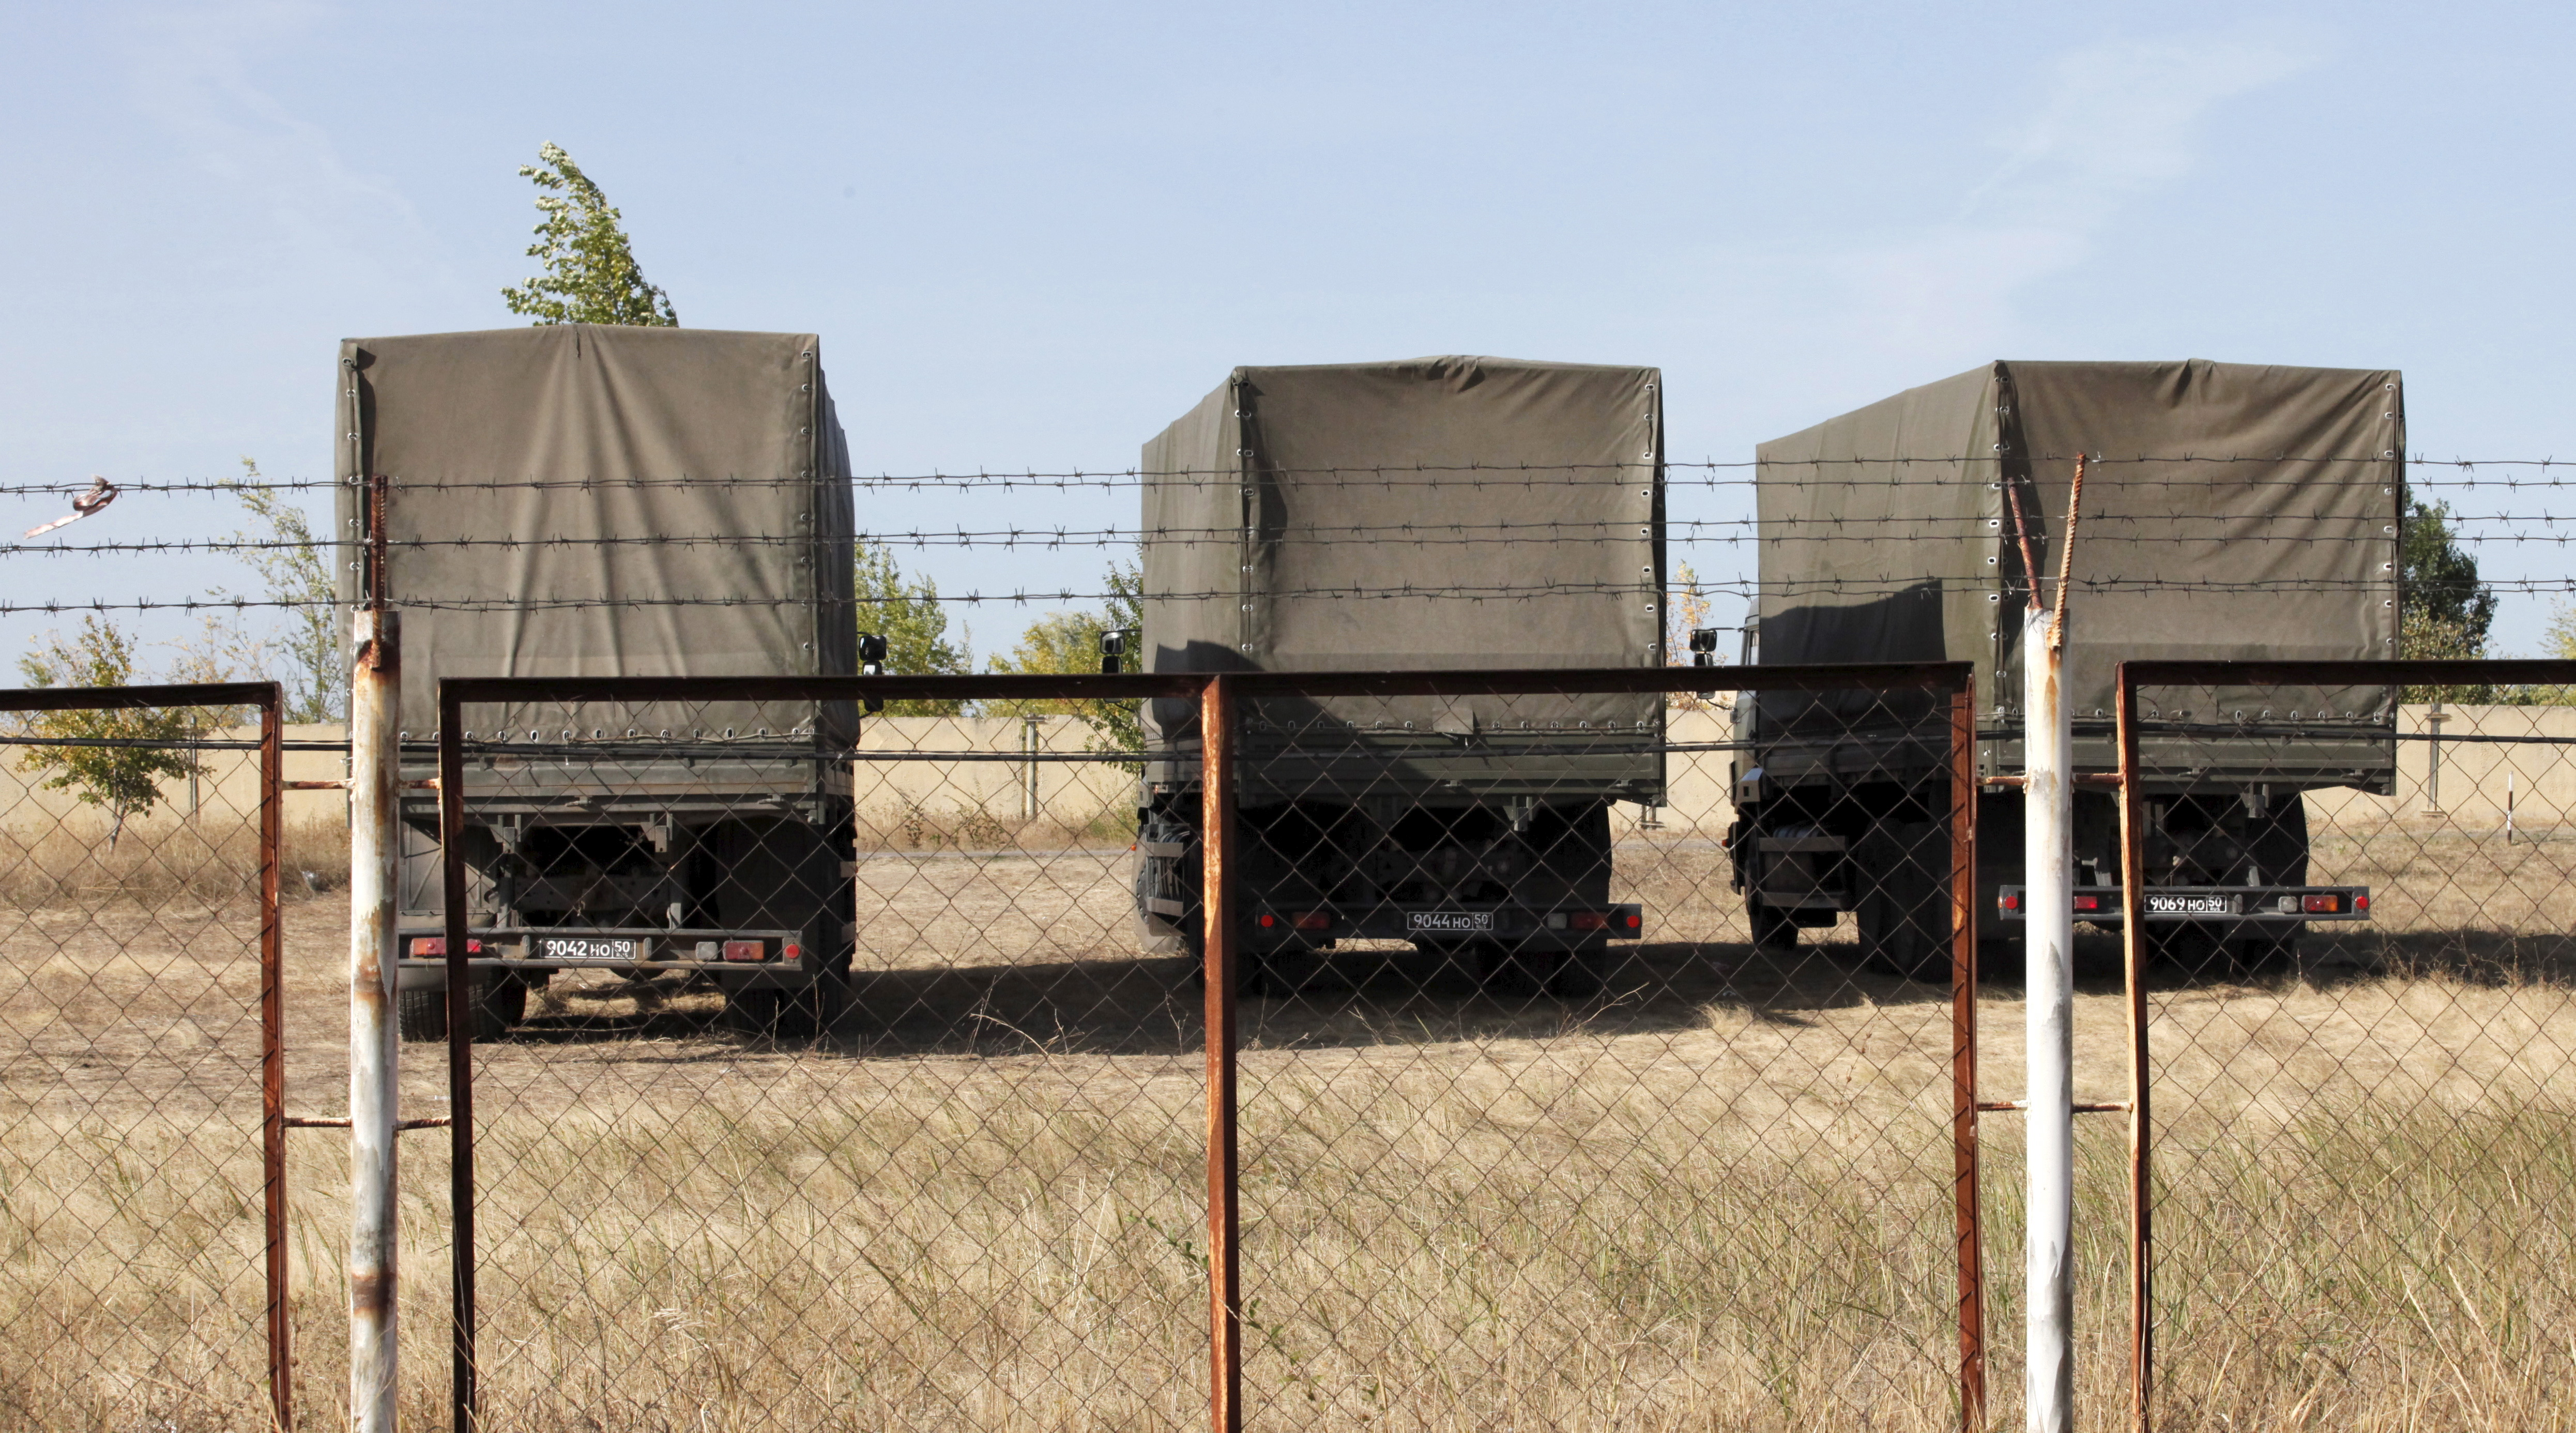 Russian military trucks are seen on the territory of an old military depot near the Russian-Ukrainian border in the town of Boguchar, south of Voronezh, Russia, Sept. 21, 2015.